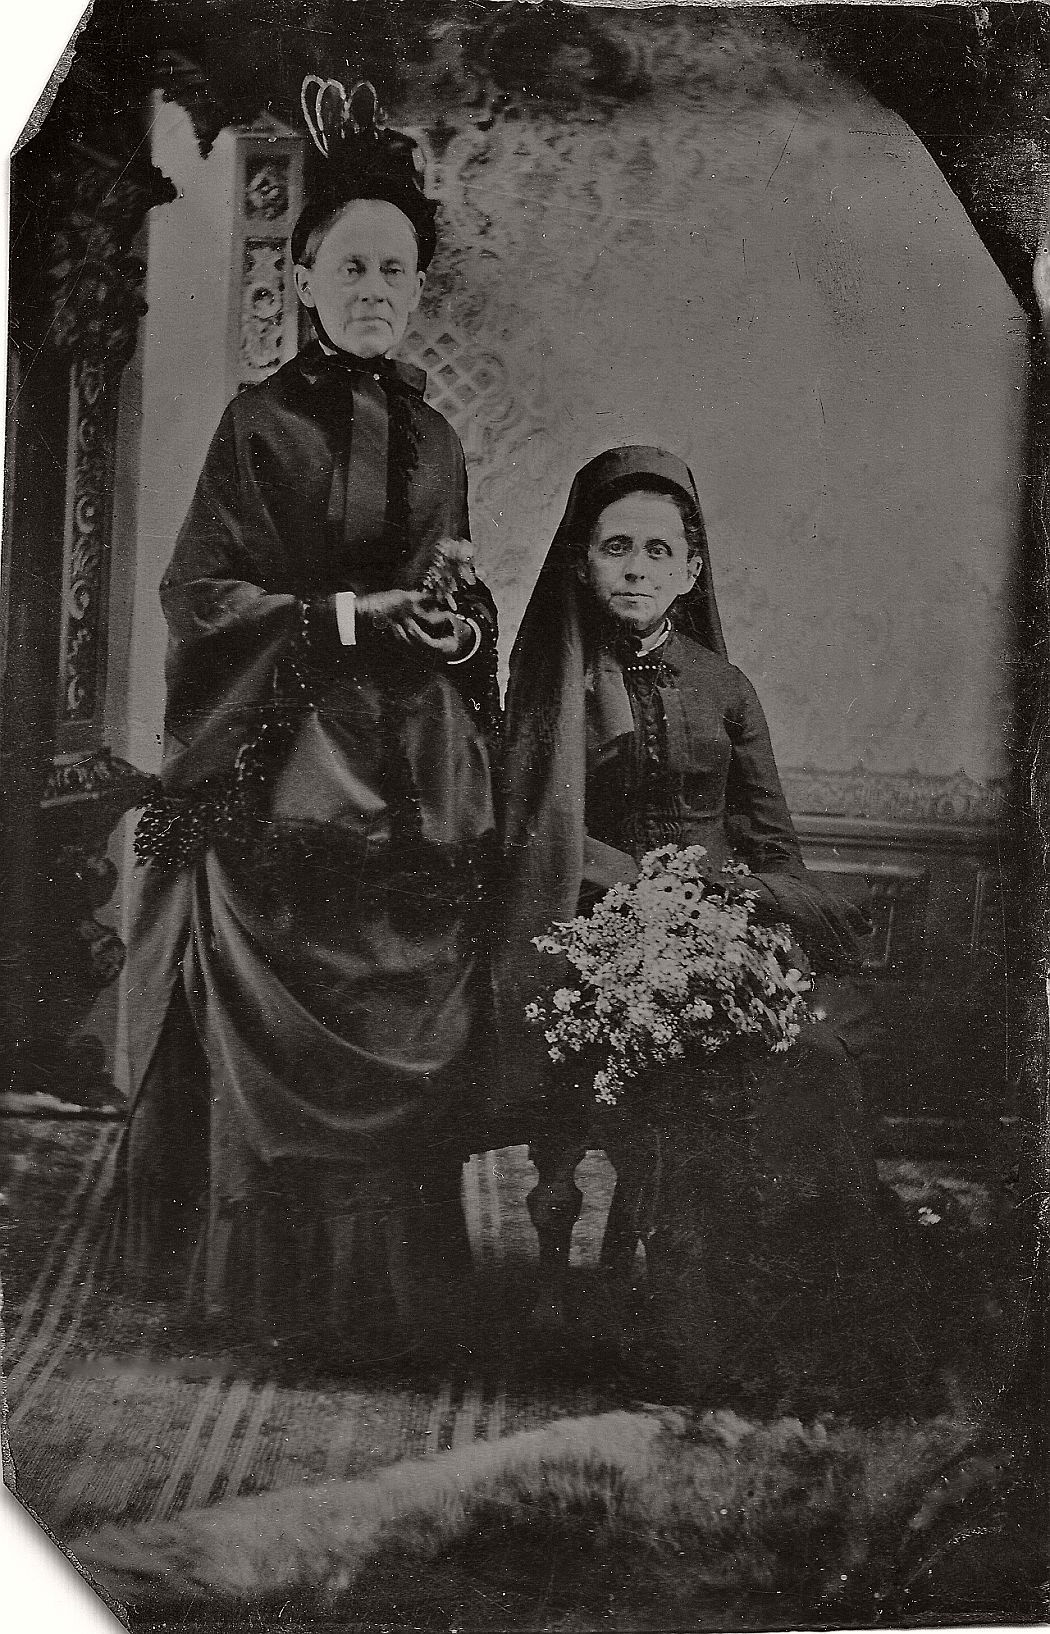 vintage-daguerreotypes-of-widows-in-mourning-victorian-era-1800s-01